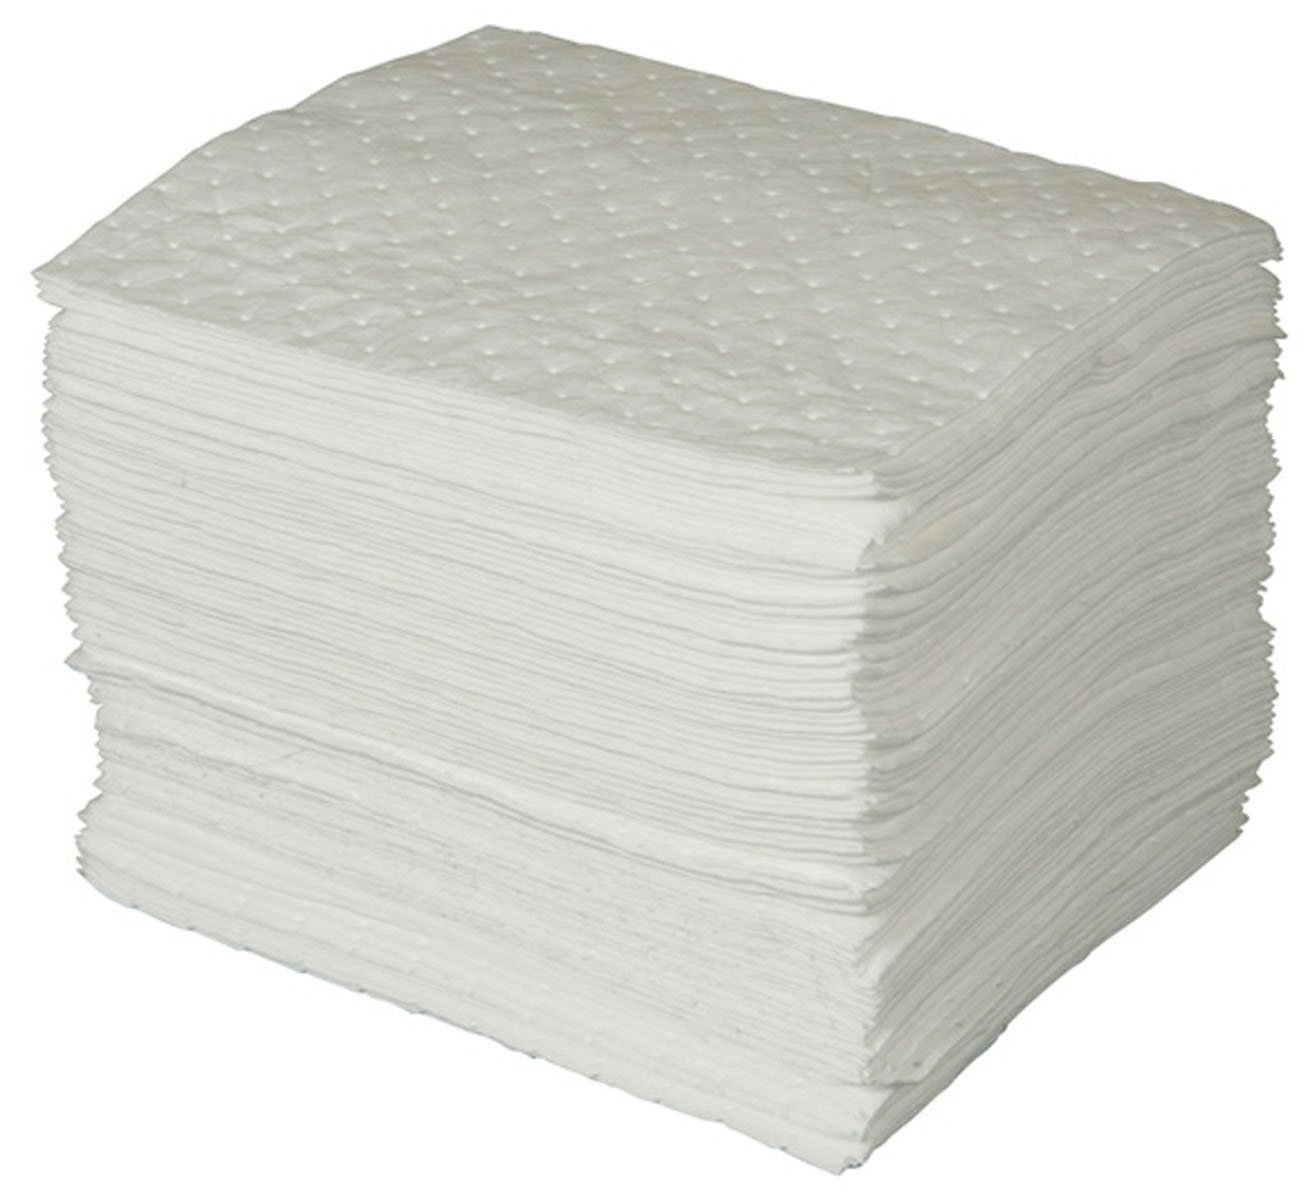 Brady SPC Basic Oil-Only Heavy Weight Absorbent Pad, White, 15'' L x 17'' W (100 Sheets Per Bale) - BPO100 by Brady SPC